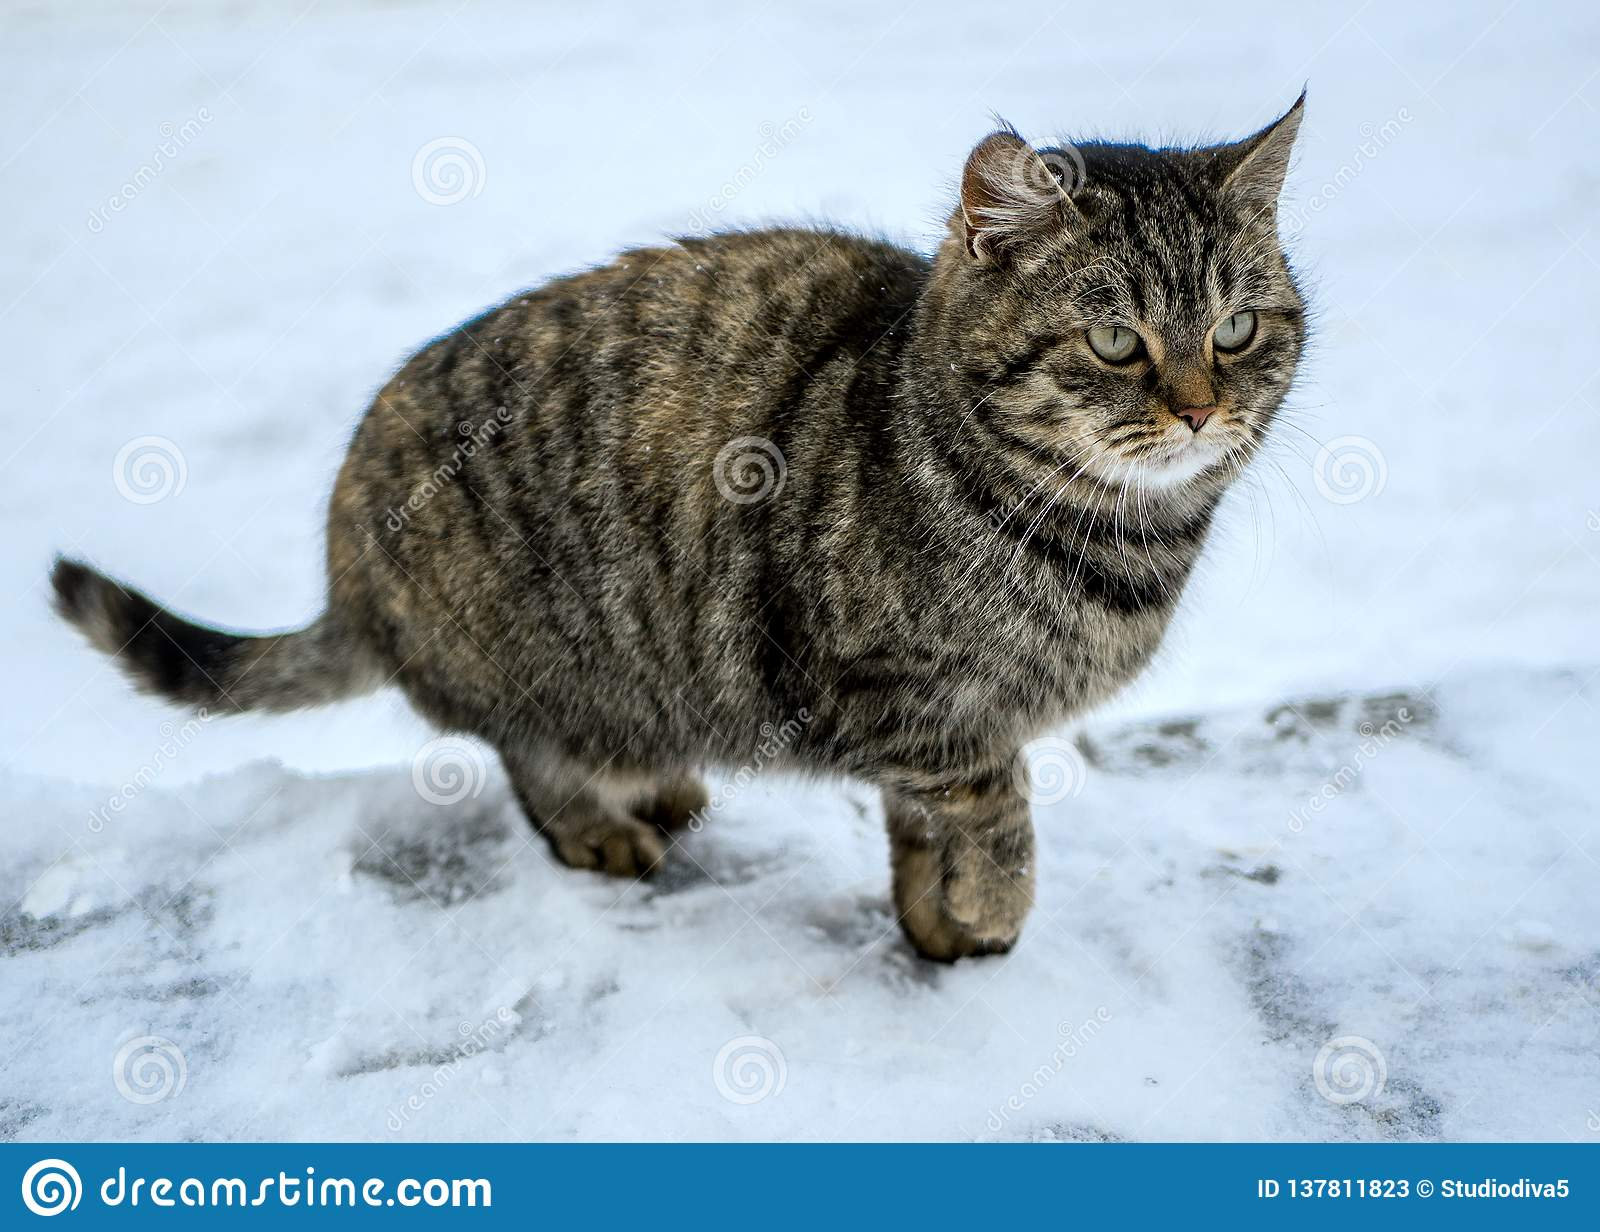 Funny cat outdoors on winter day. Lovely cat.